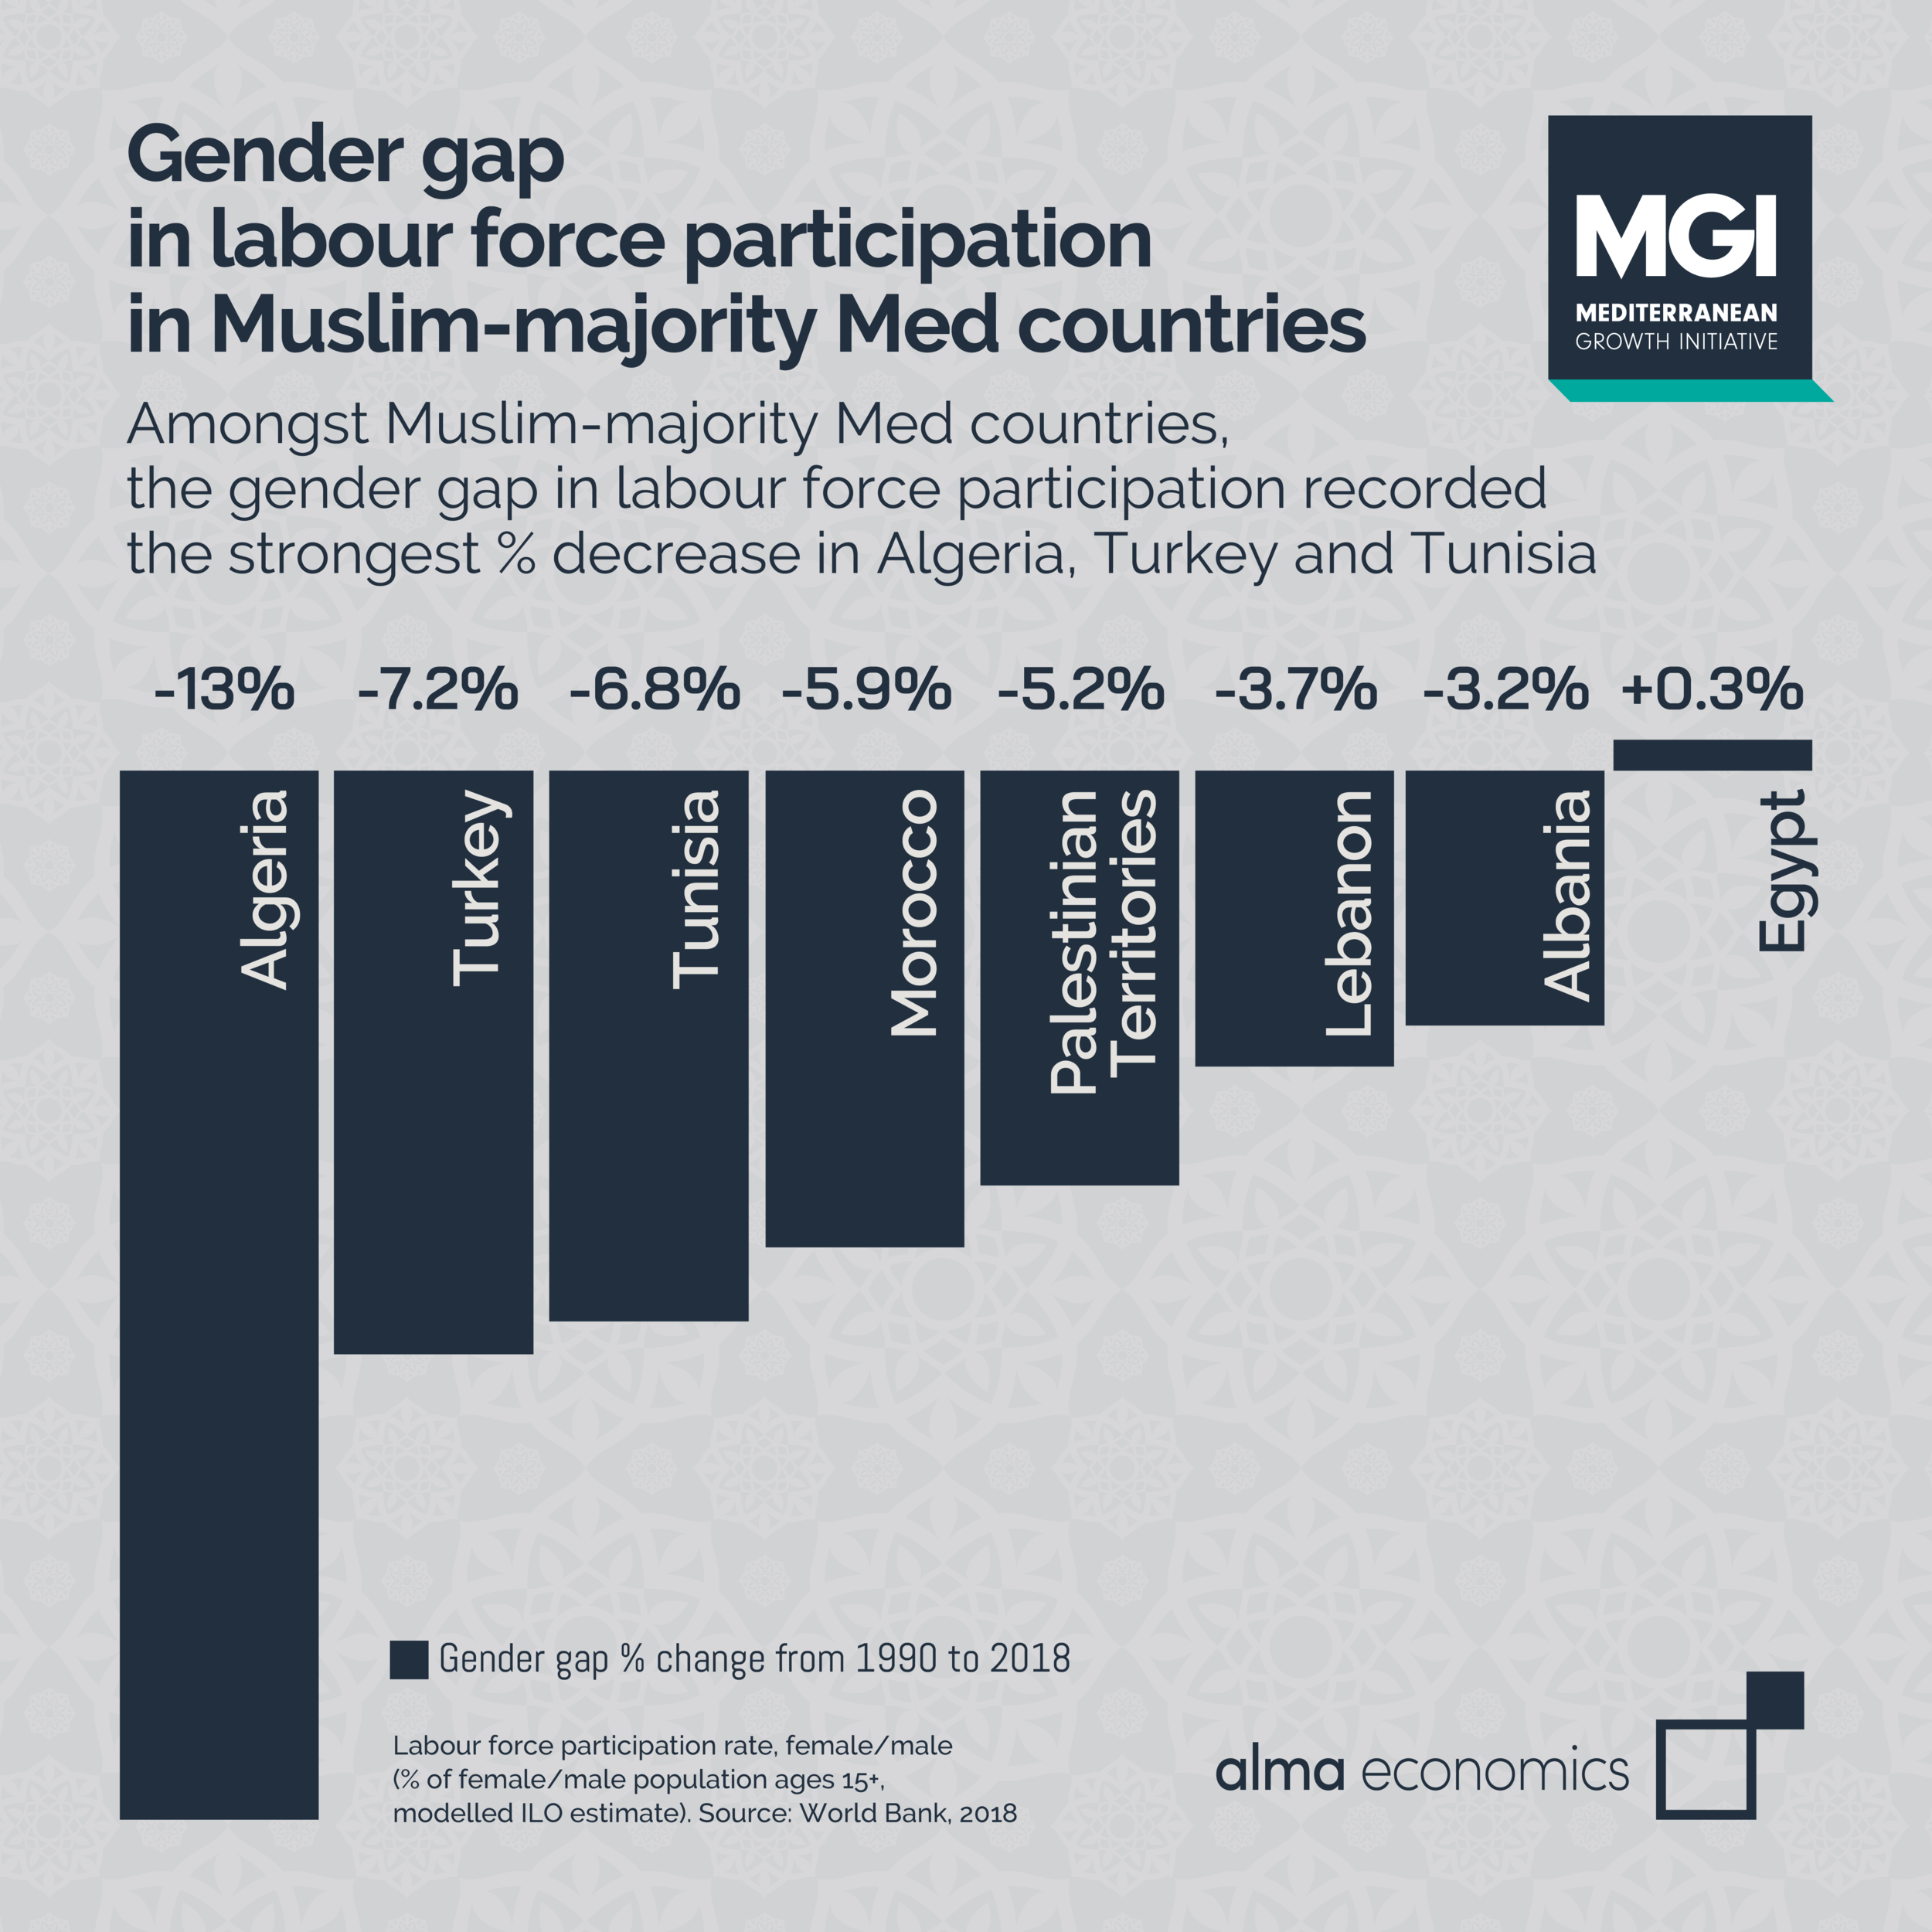 Labour force participation in Muslim-majority Med countries: the gender gap - Amongst Muslim-majority Med countries, the gender gap in labour force participation recorded the strongest % decrease in Algeria, Turkey and Tunisia